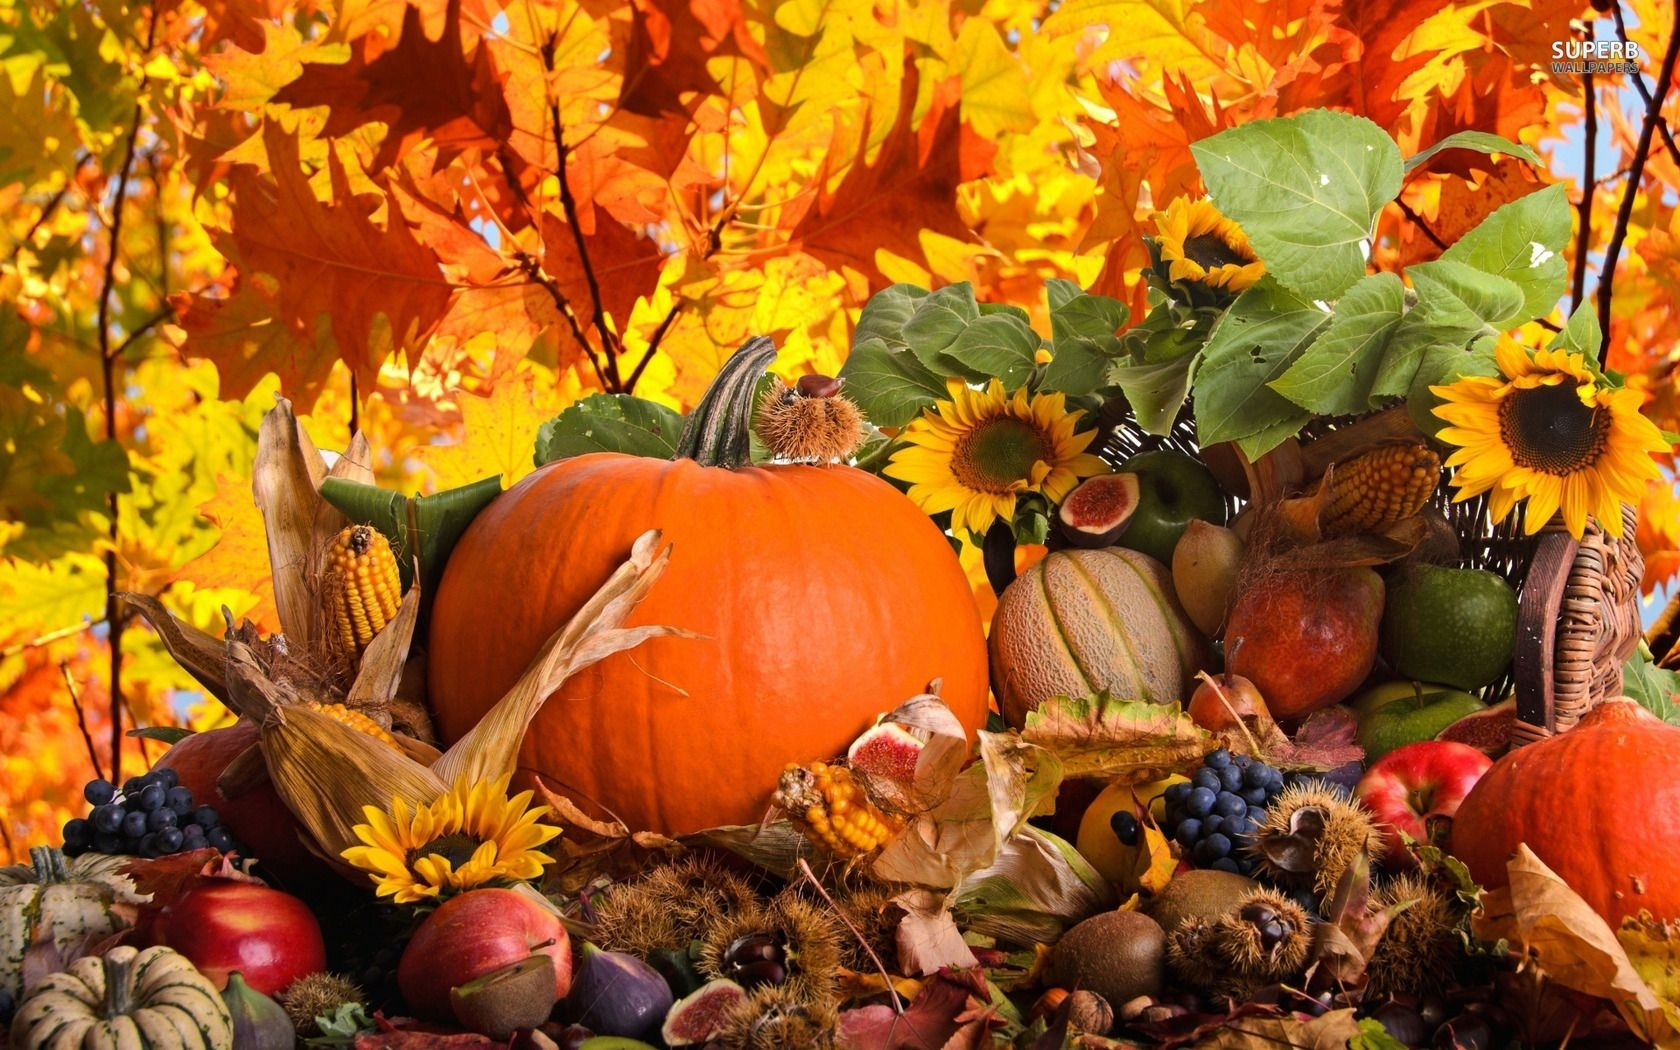 10 Most Popular Fall Harvest Wallpaper Backgrounds FULL HD 1920×1080 For PC Background